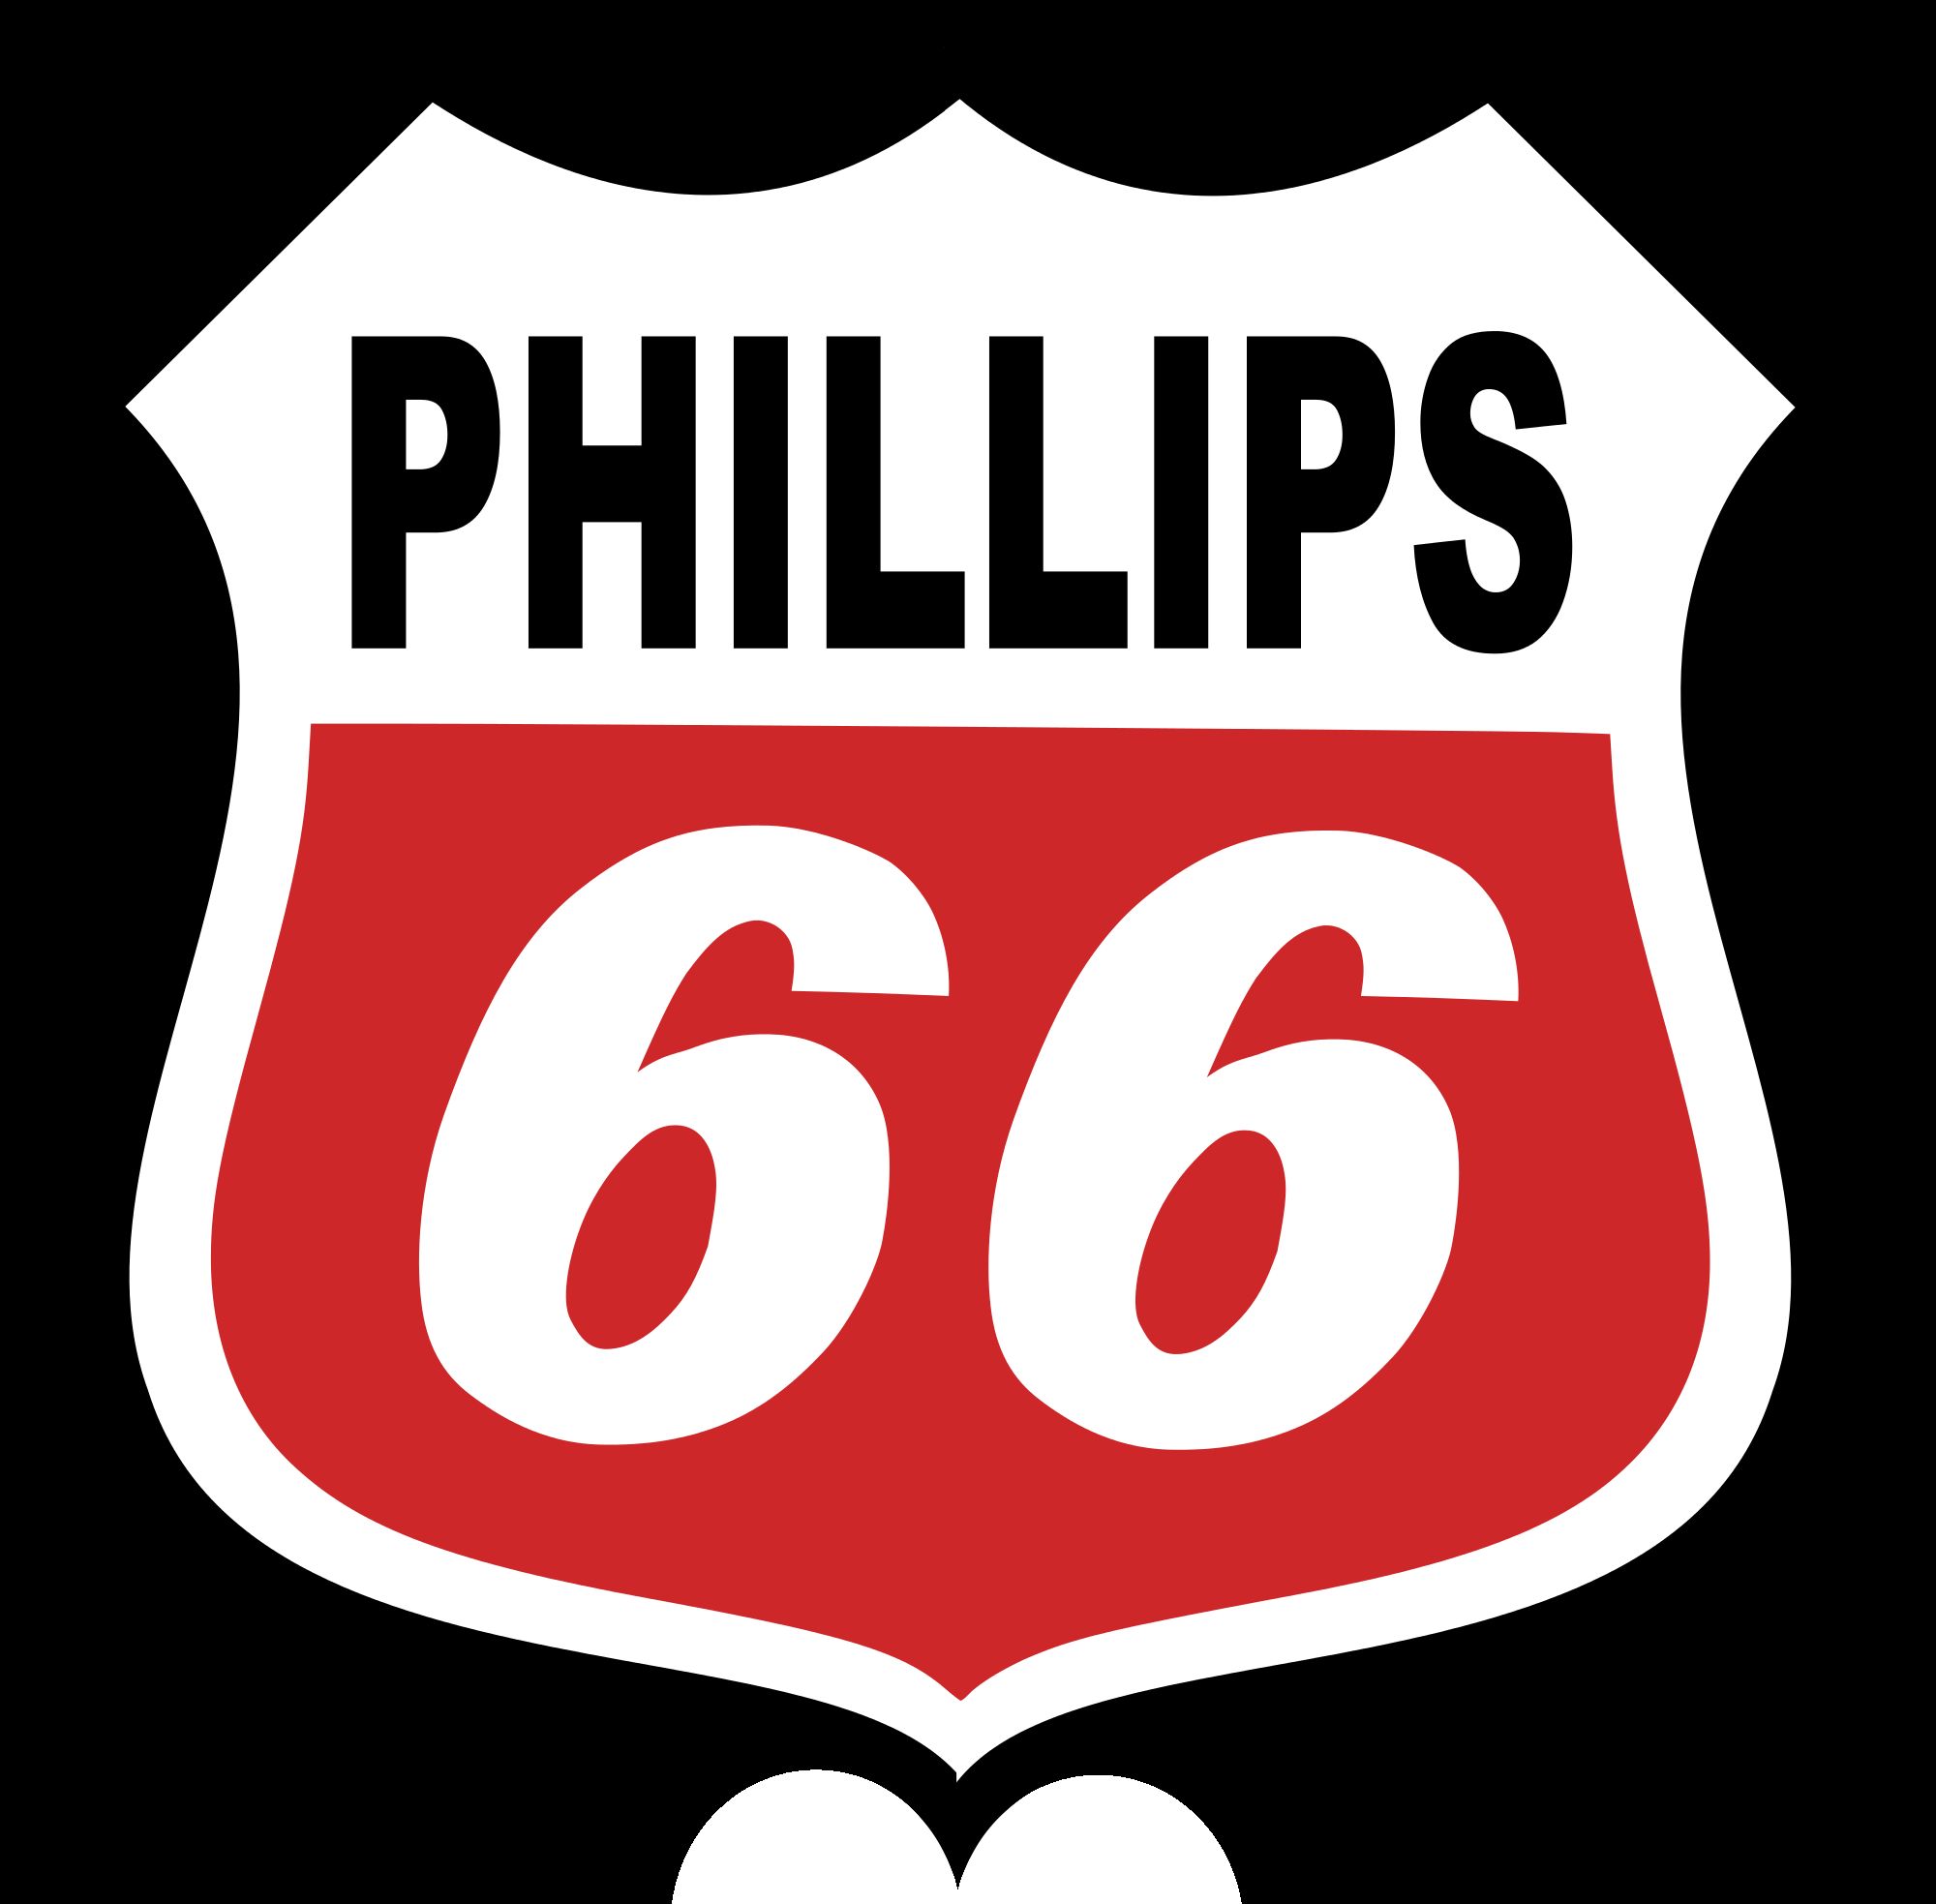 Phillips 66 Hector Oils 460 Cross Reference